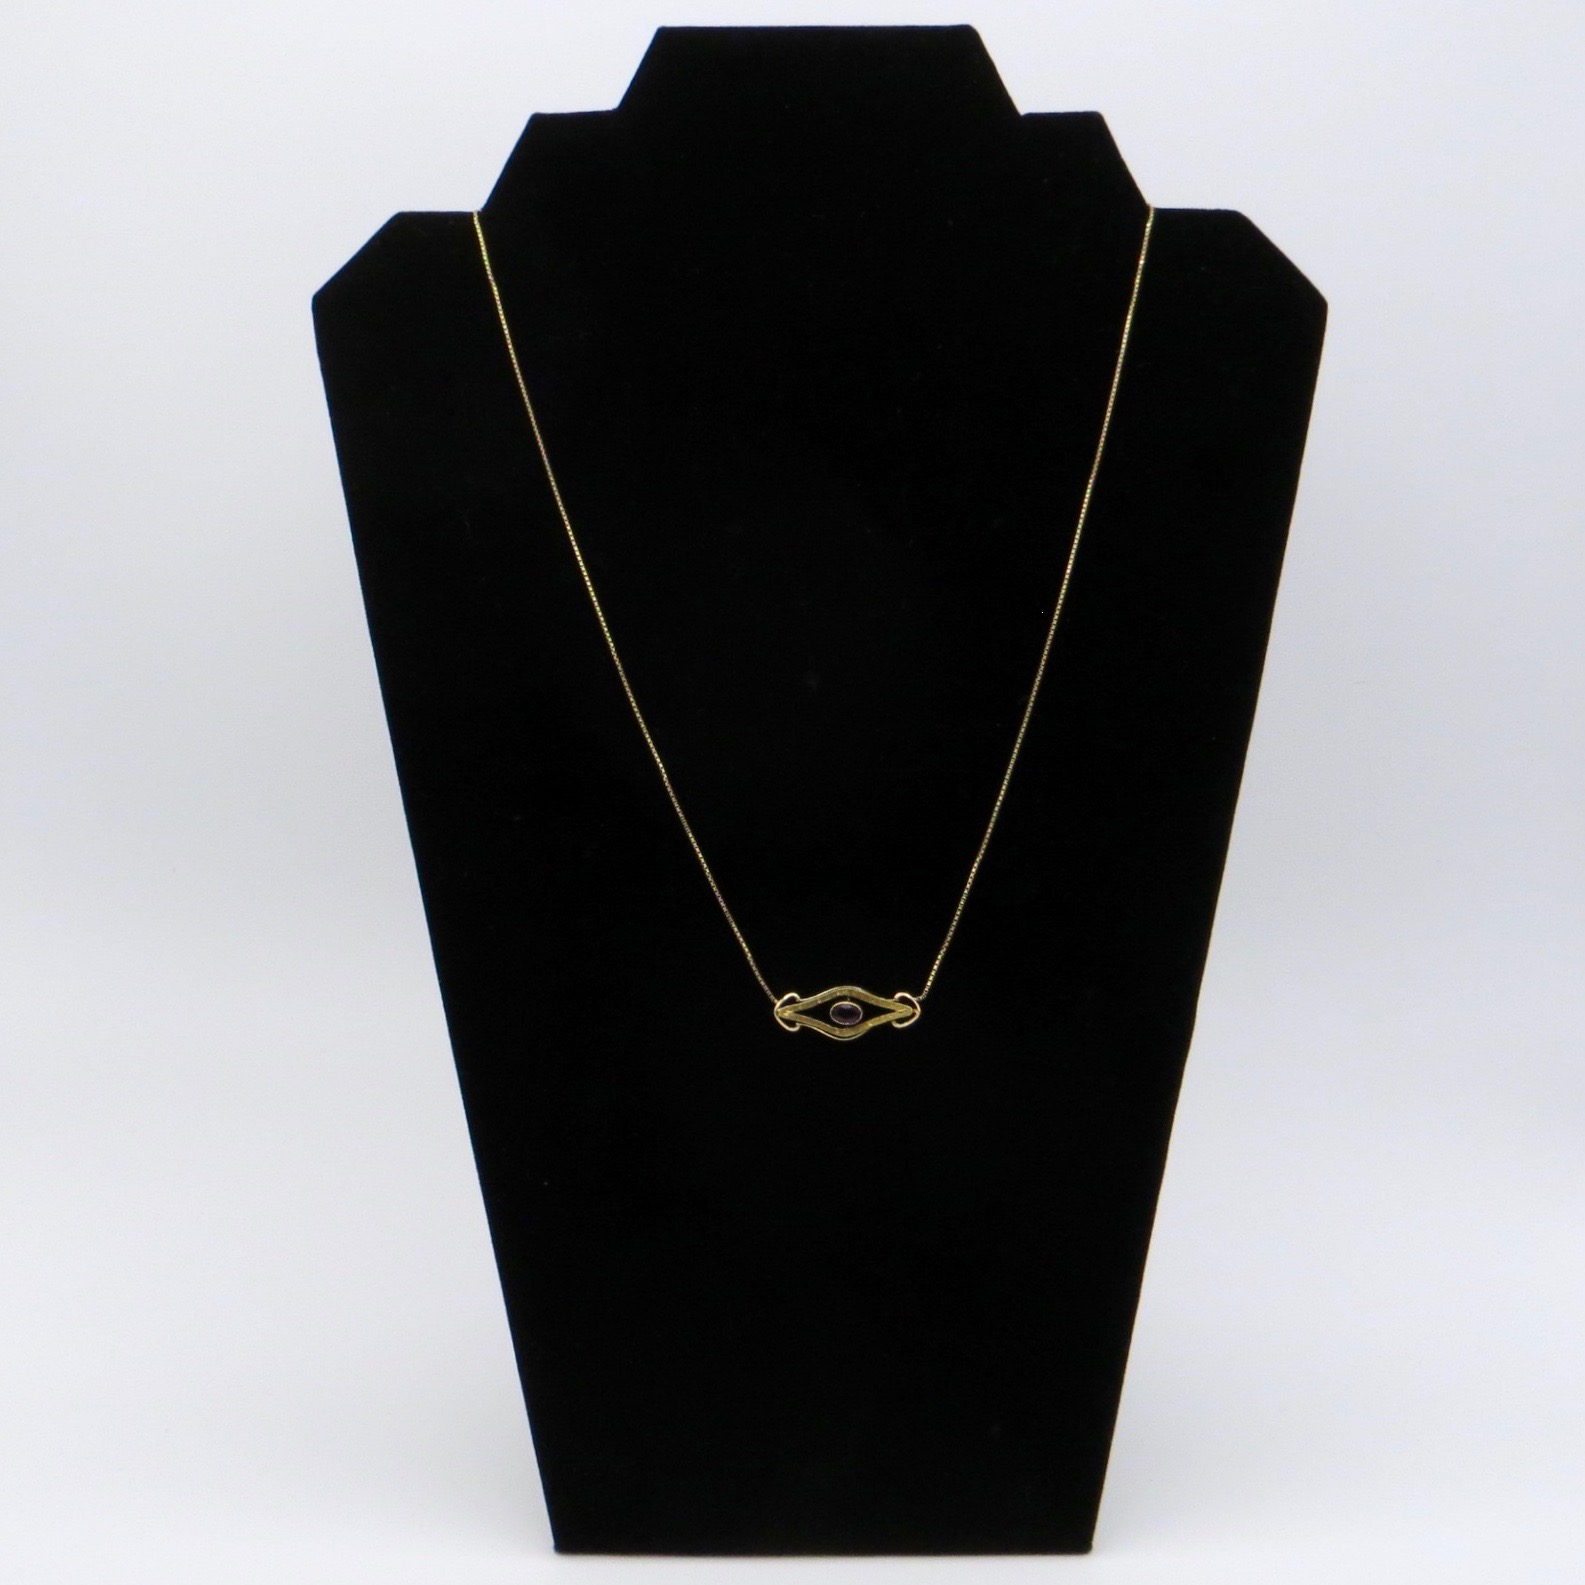 10kt Gold & Amethyst Necklace (10kt Chain)